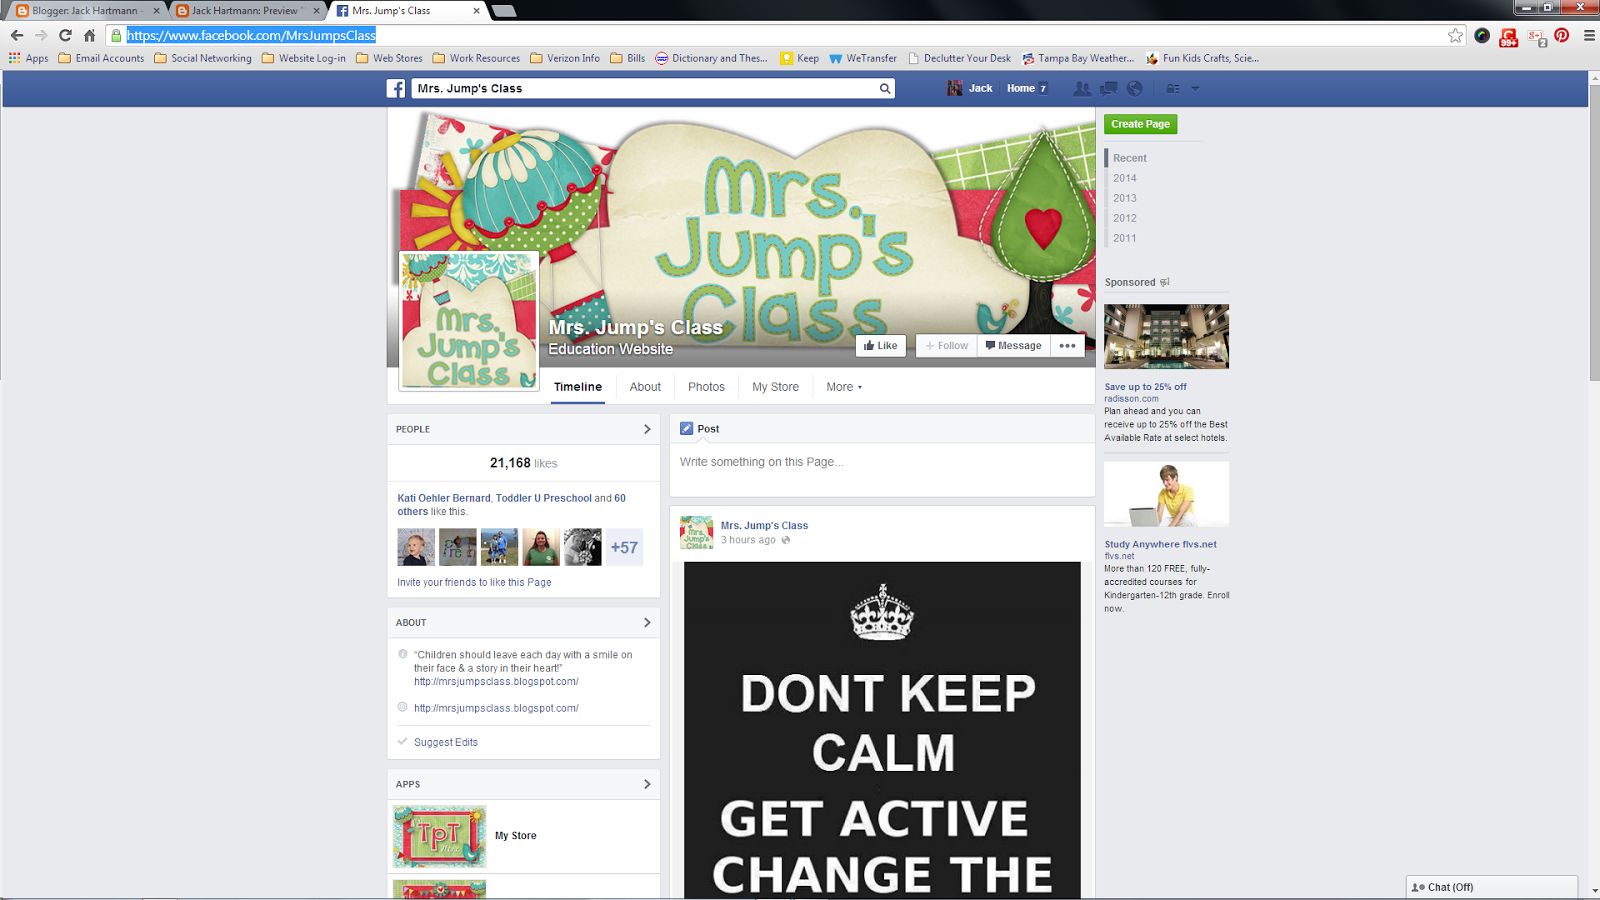 Mrs. Jumps Class Facebook Page